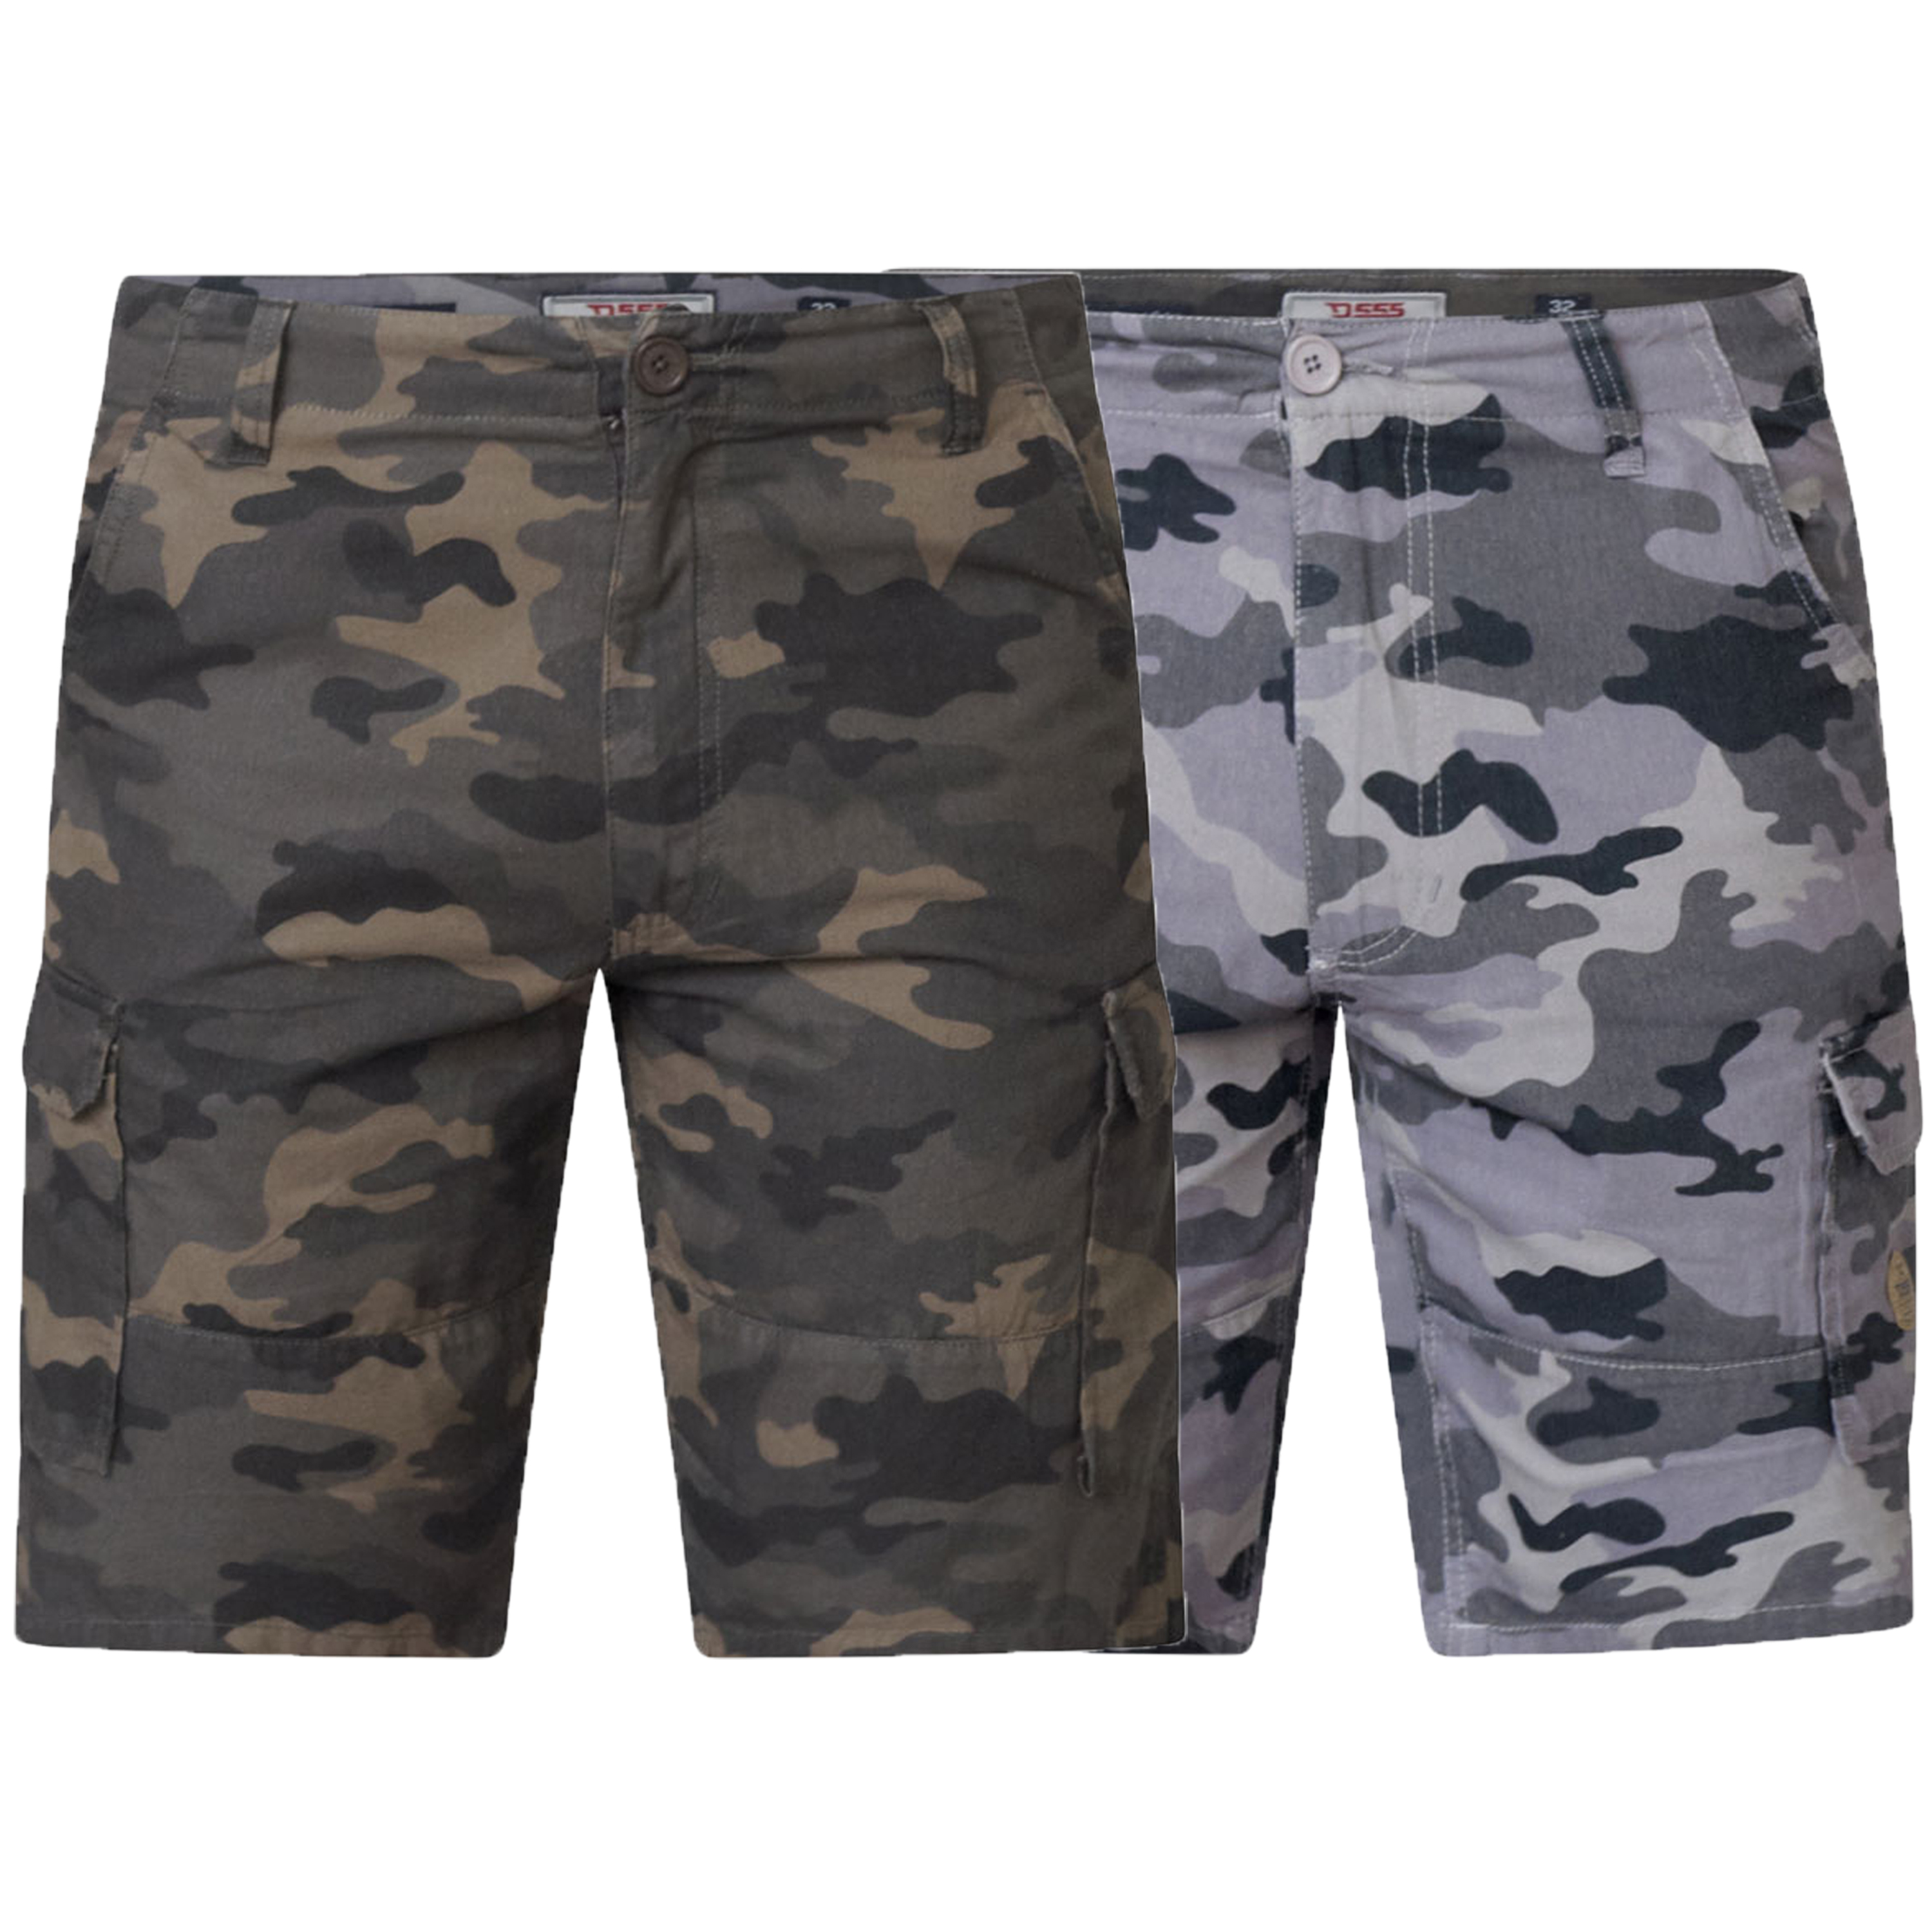 3fd8a56700a Mens Camo Cargo Shorts D555 Duke King Size Marty Military Army Knee ...